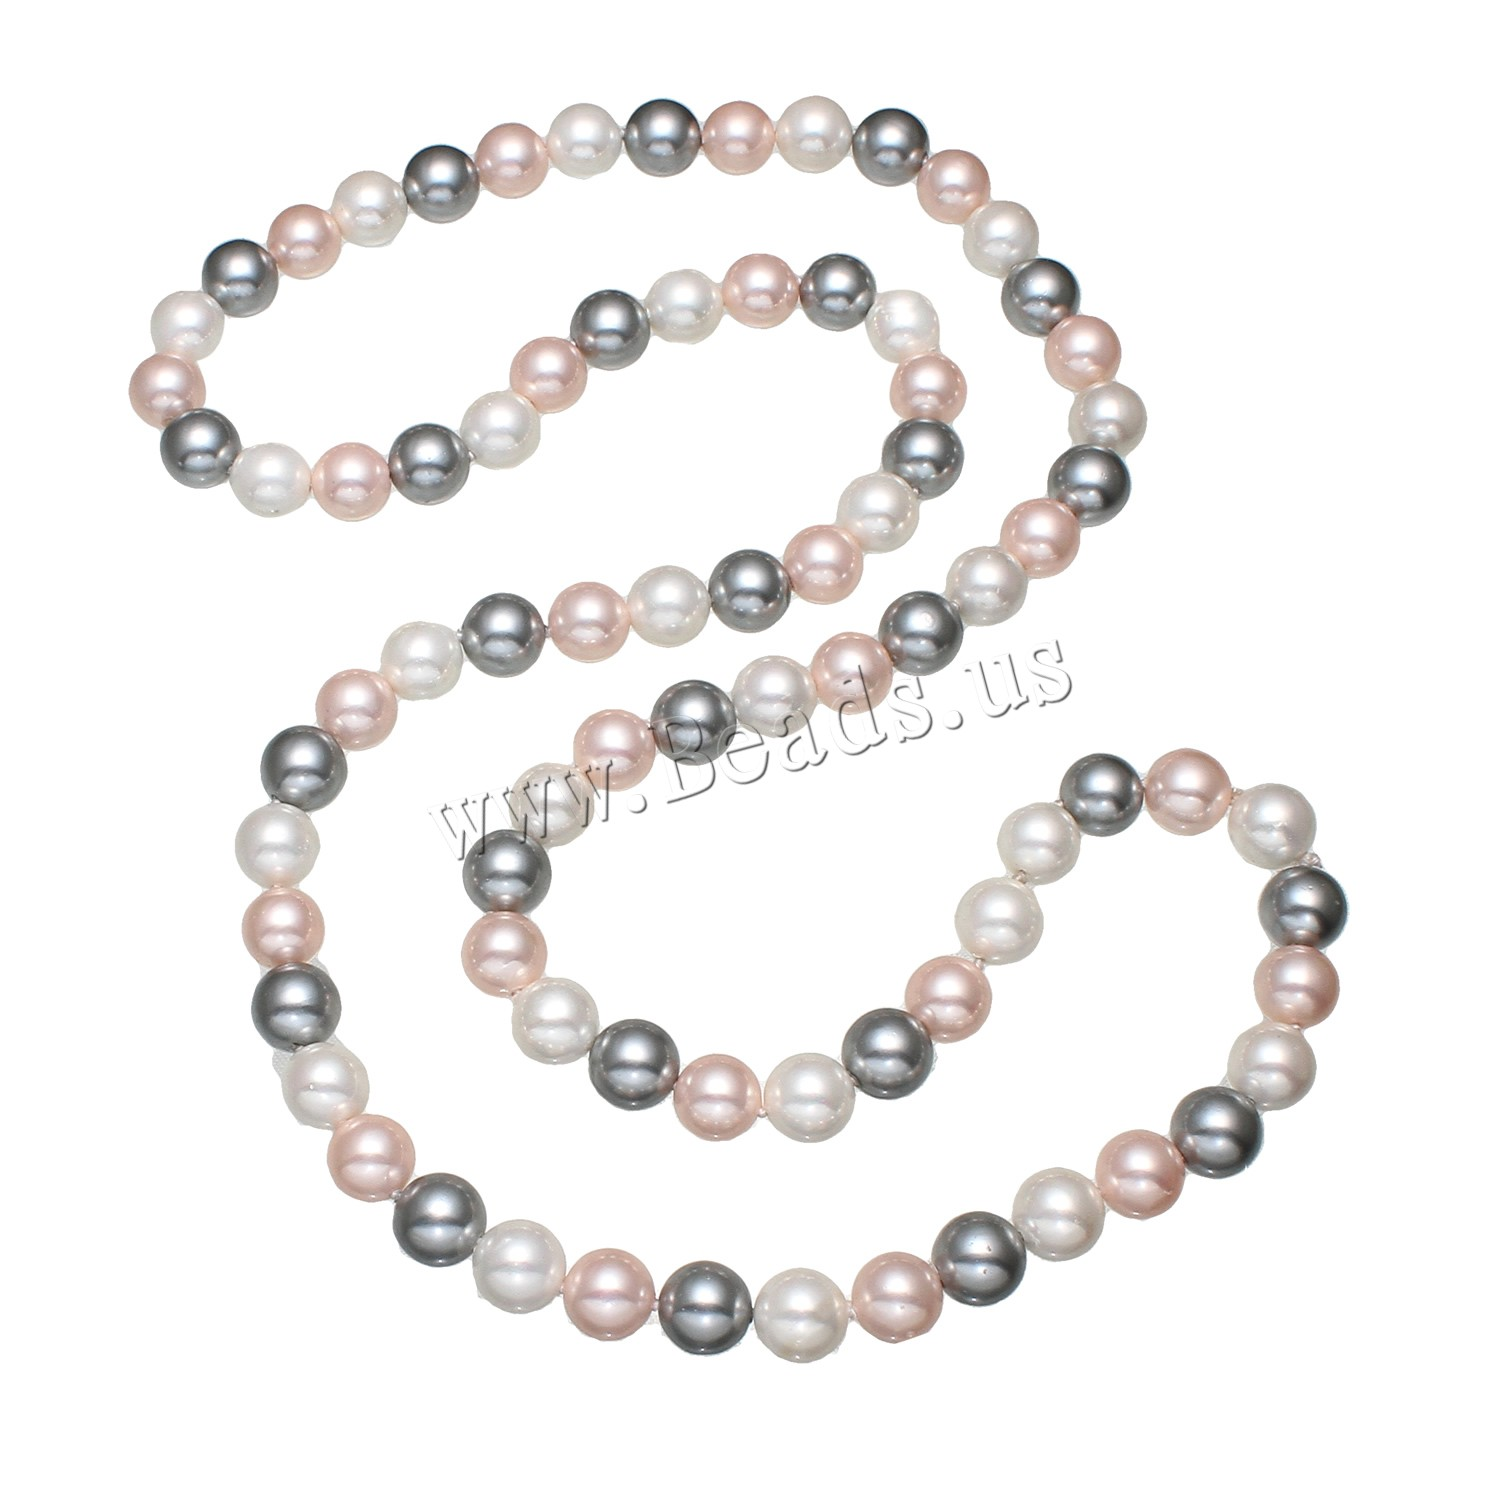 Buy Freshwater Pearl Sweater Chain Necklace South Sea Shell Round woman 10mm Sold Per Approx 32 Inch Strand